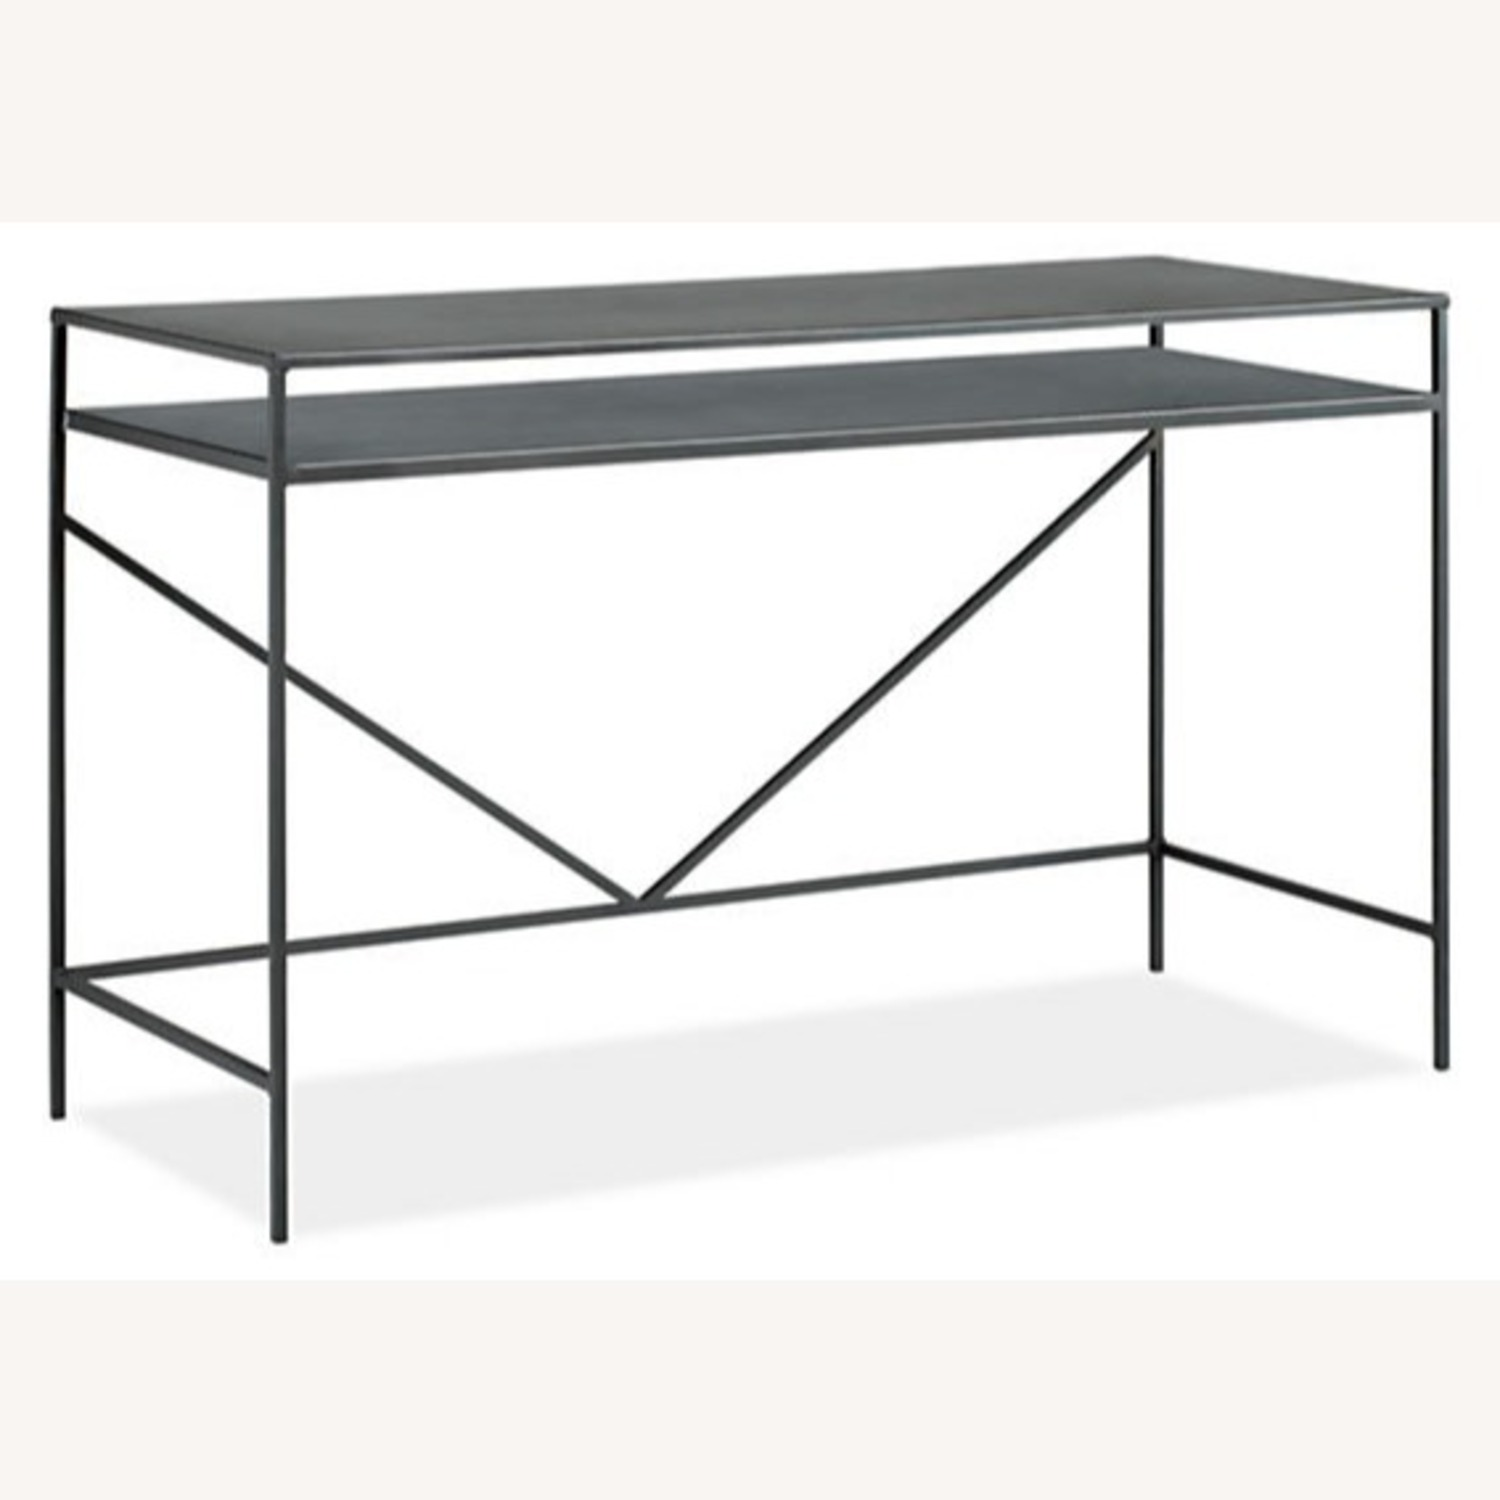 Room&Board Slim Desk in Natural Steel - image-3